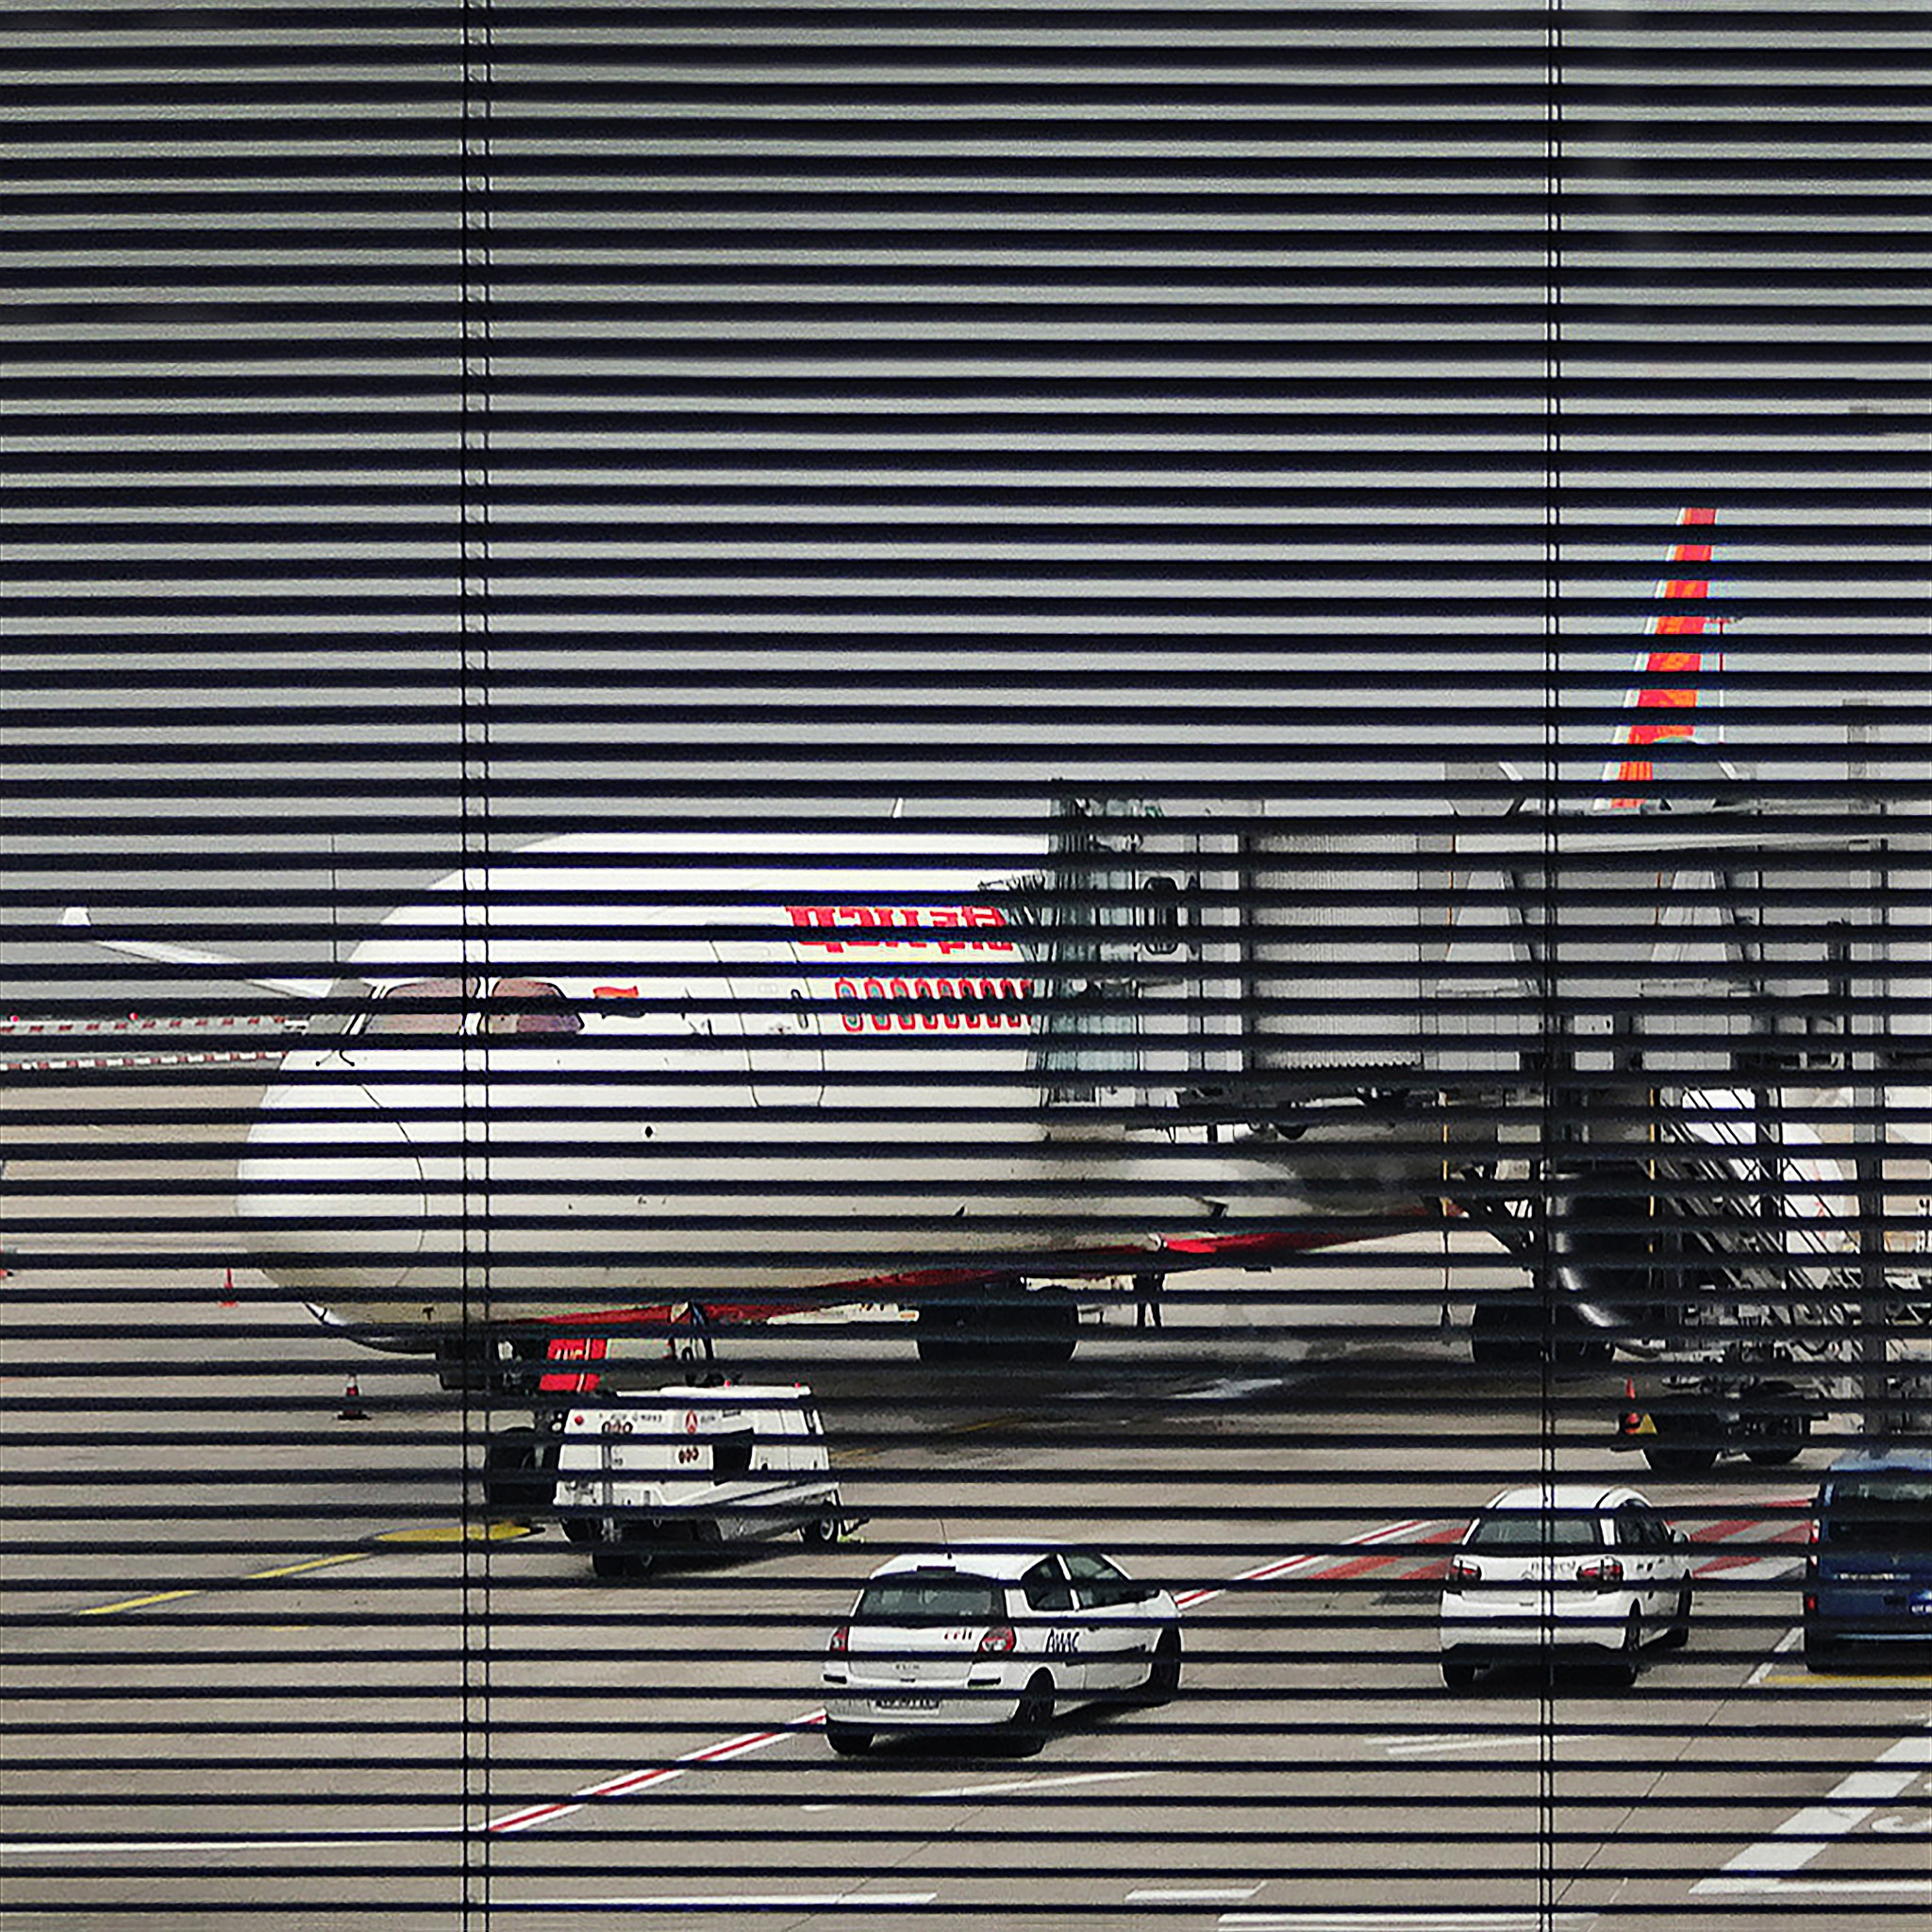 Air India Dreamliner getting ready - CDG airport, Paris, France by JMCtronic